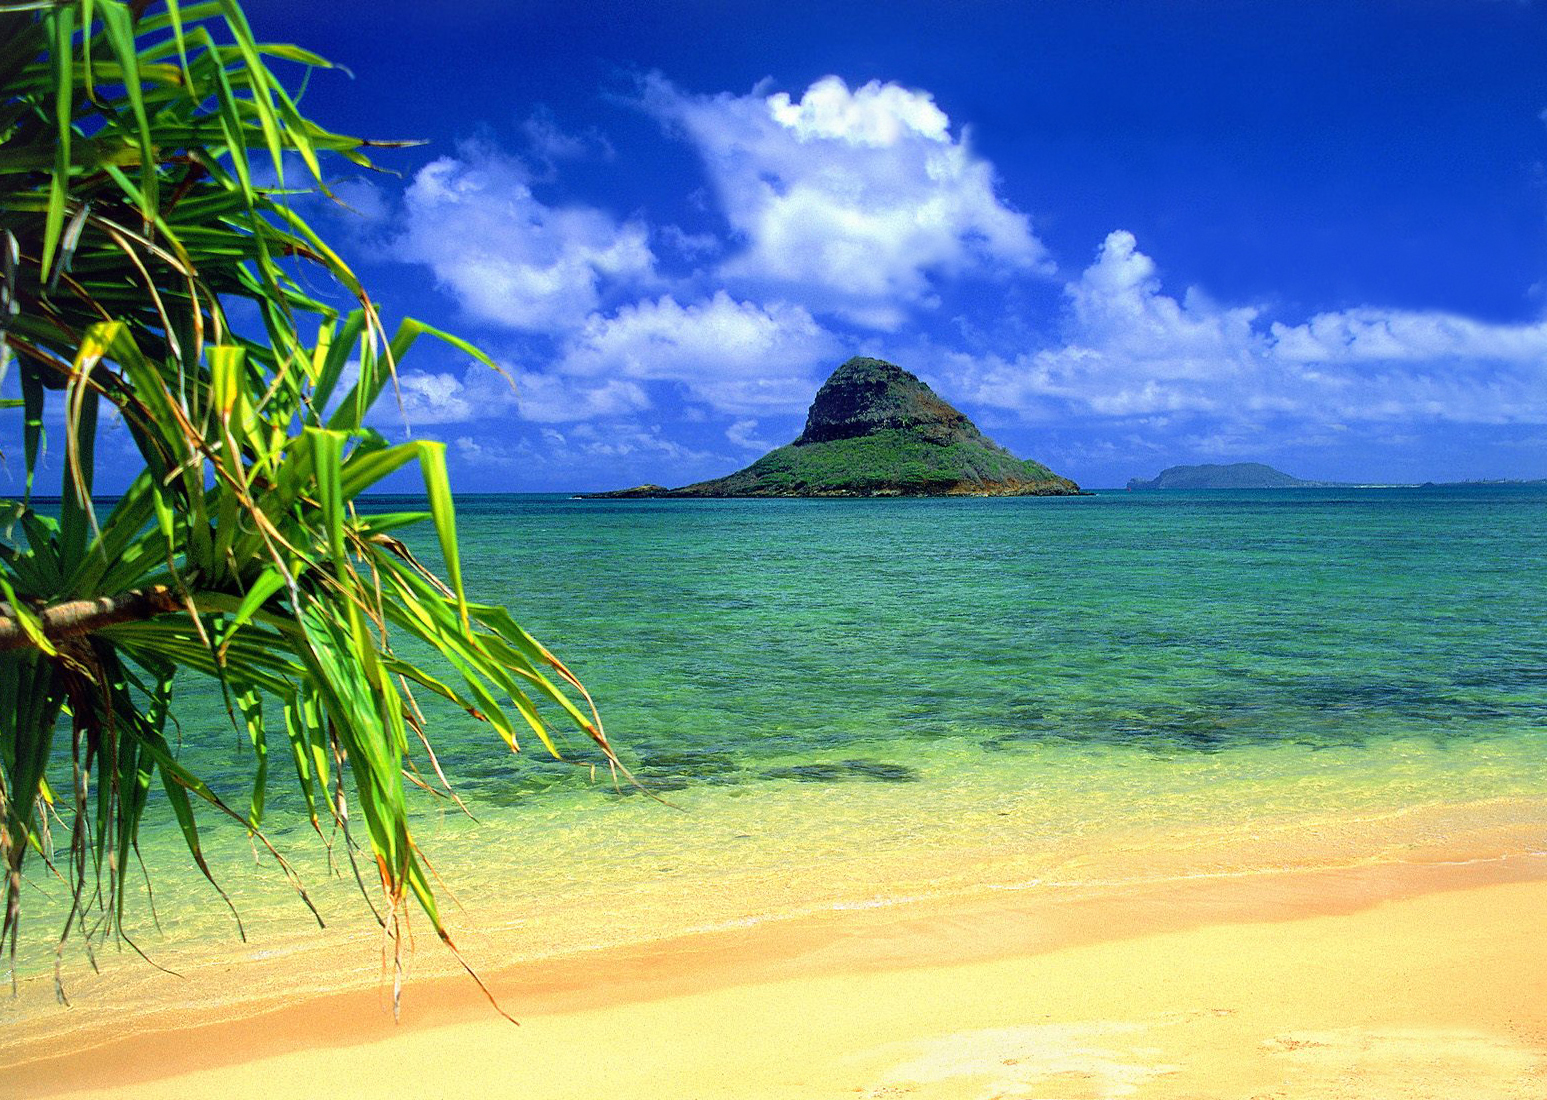 Hawaii Beaches Background Images amp Pictures   Becuo 1547x1100